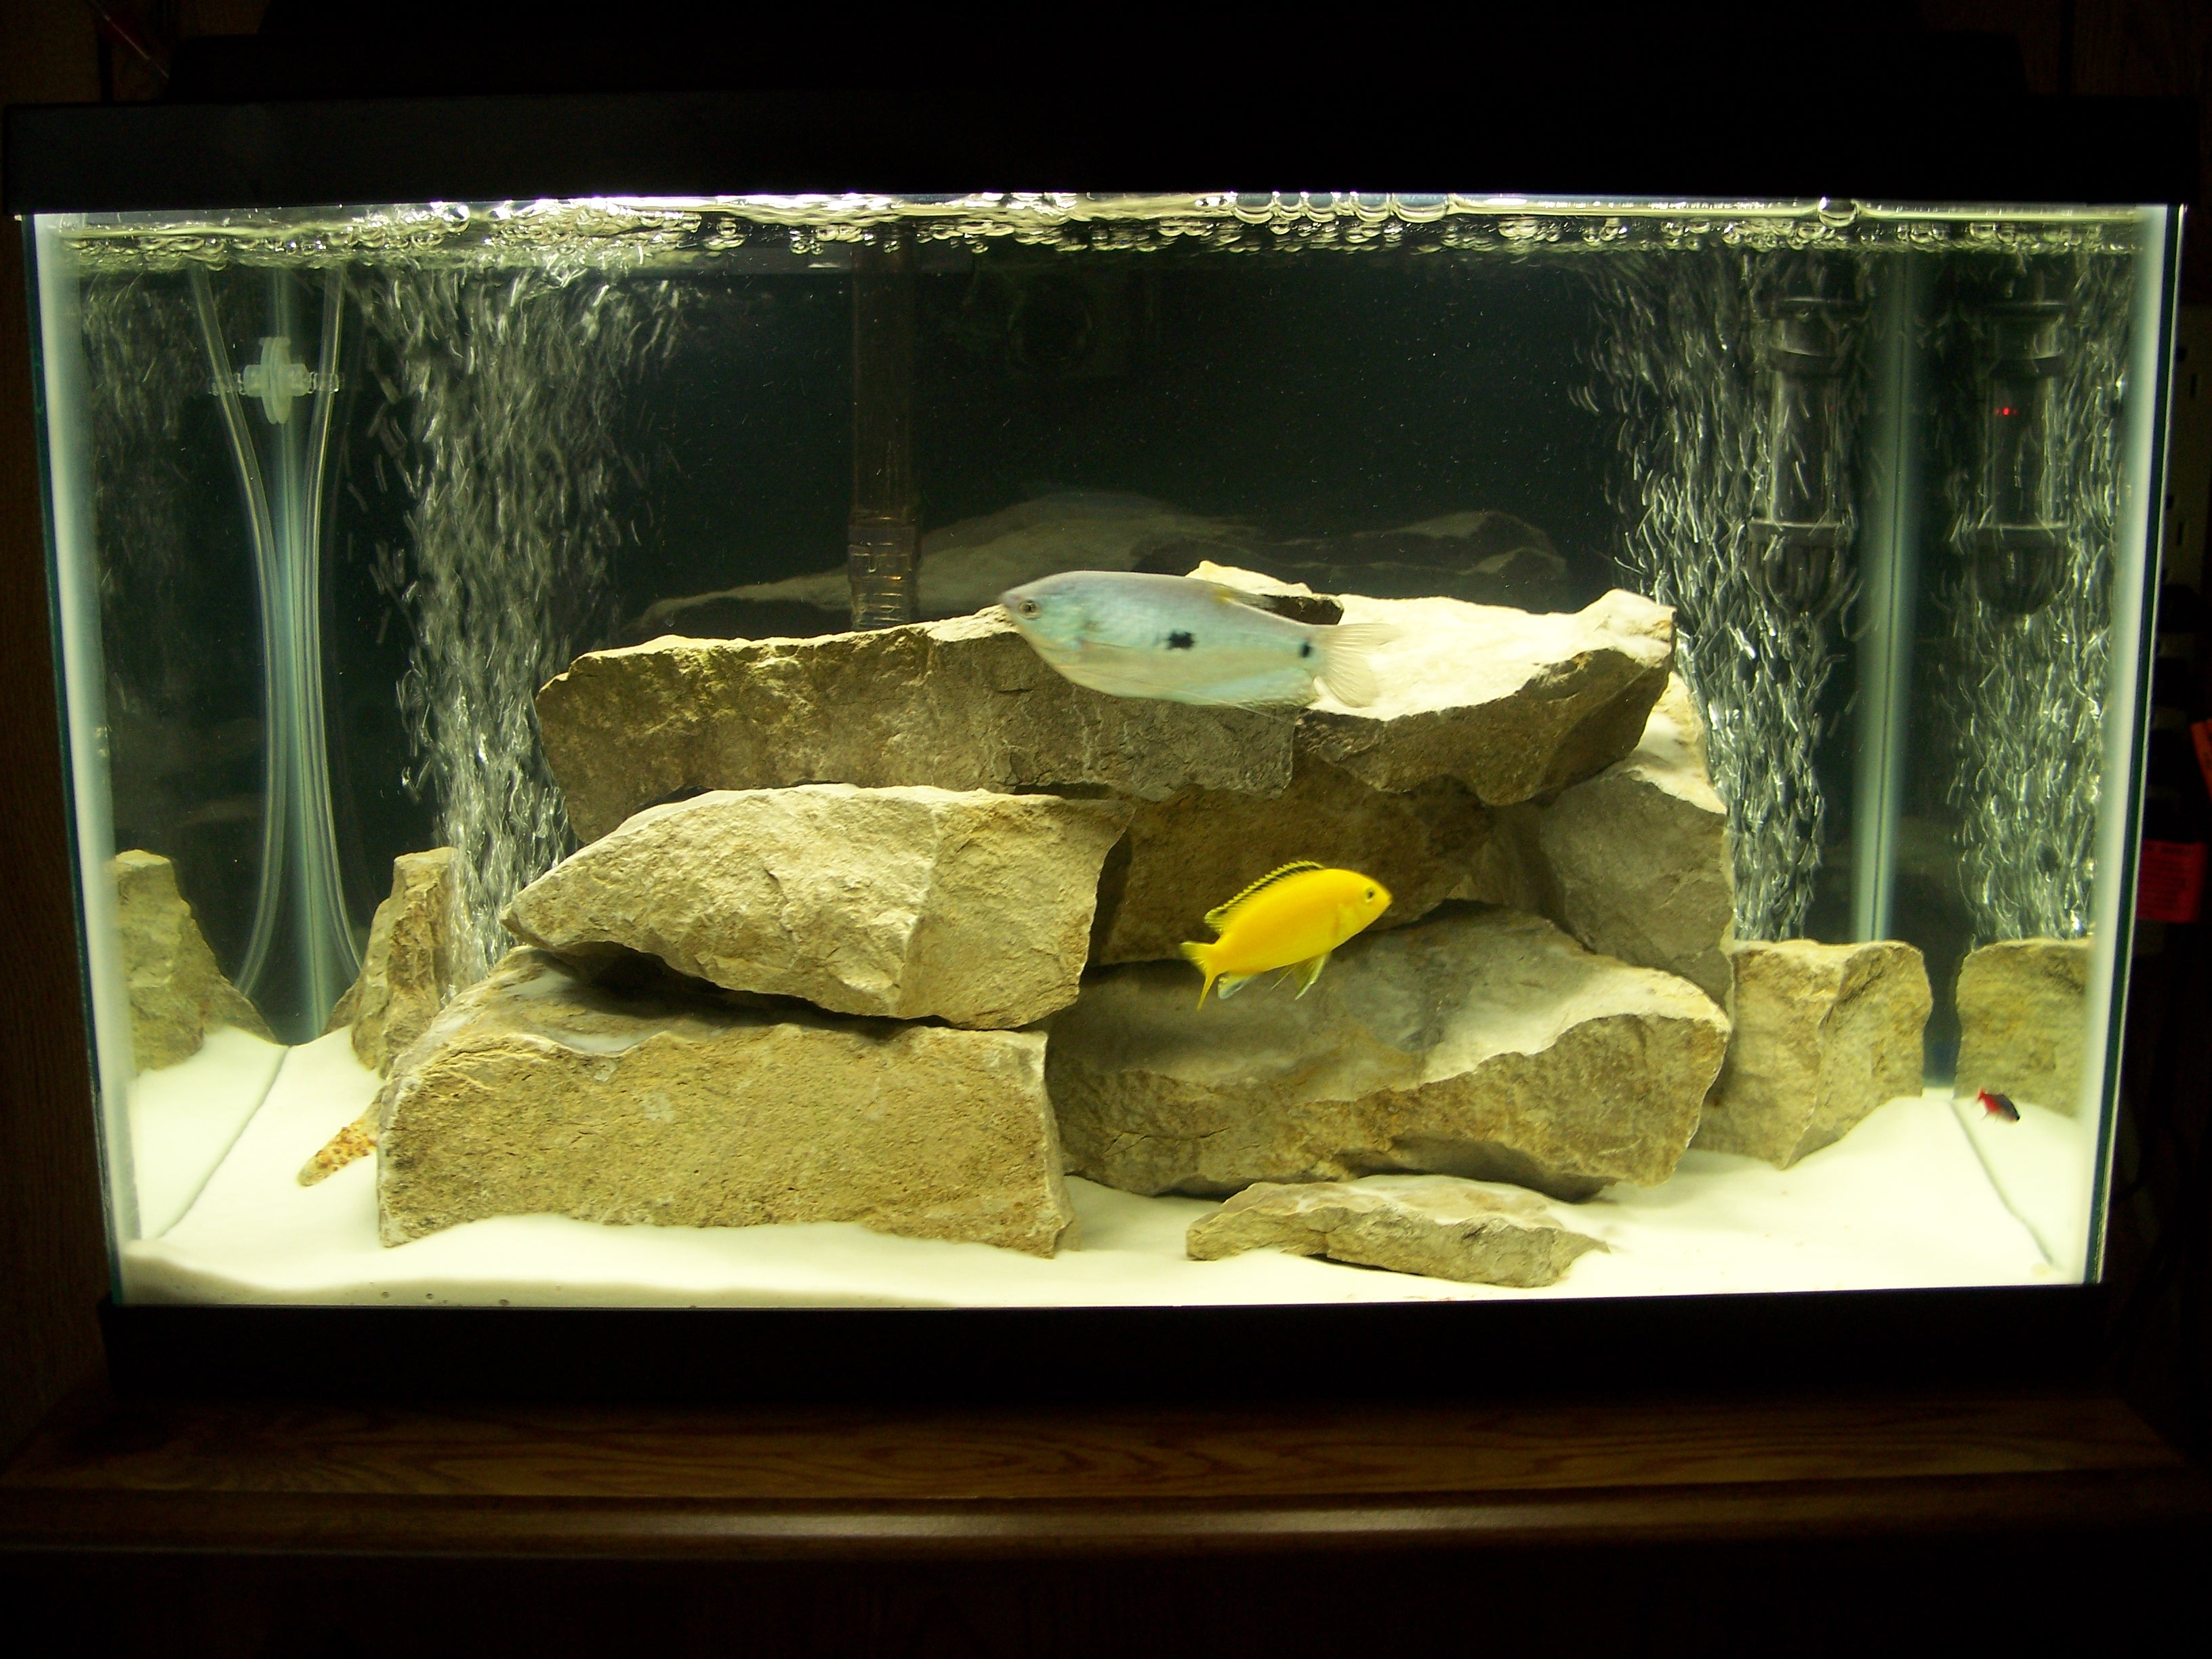 10 gallon fish tank in litres 10 gallon tank my 32. Black Bedroom Furniture Sets. Home Design Ideas